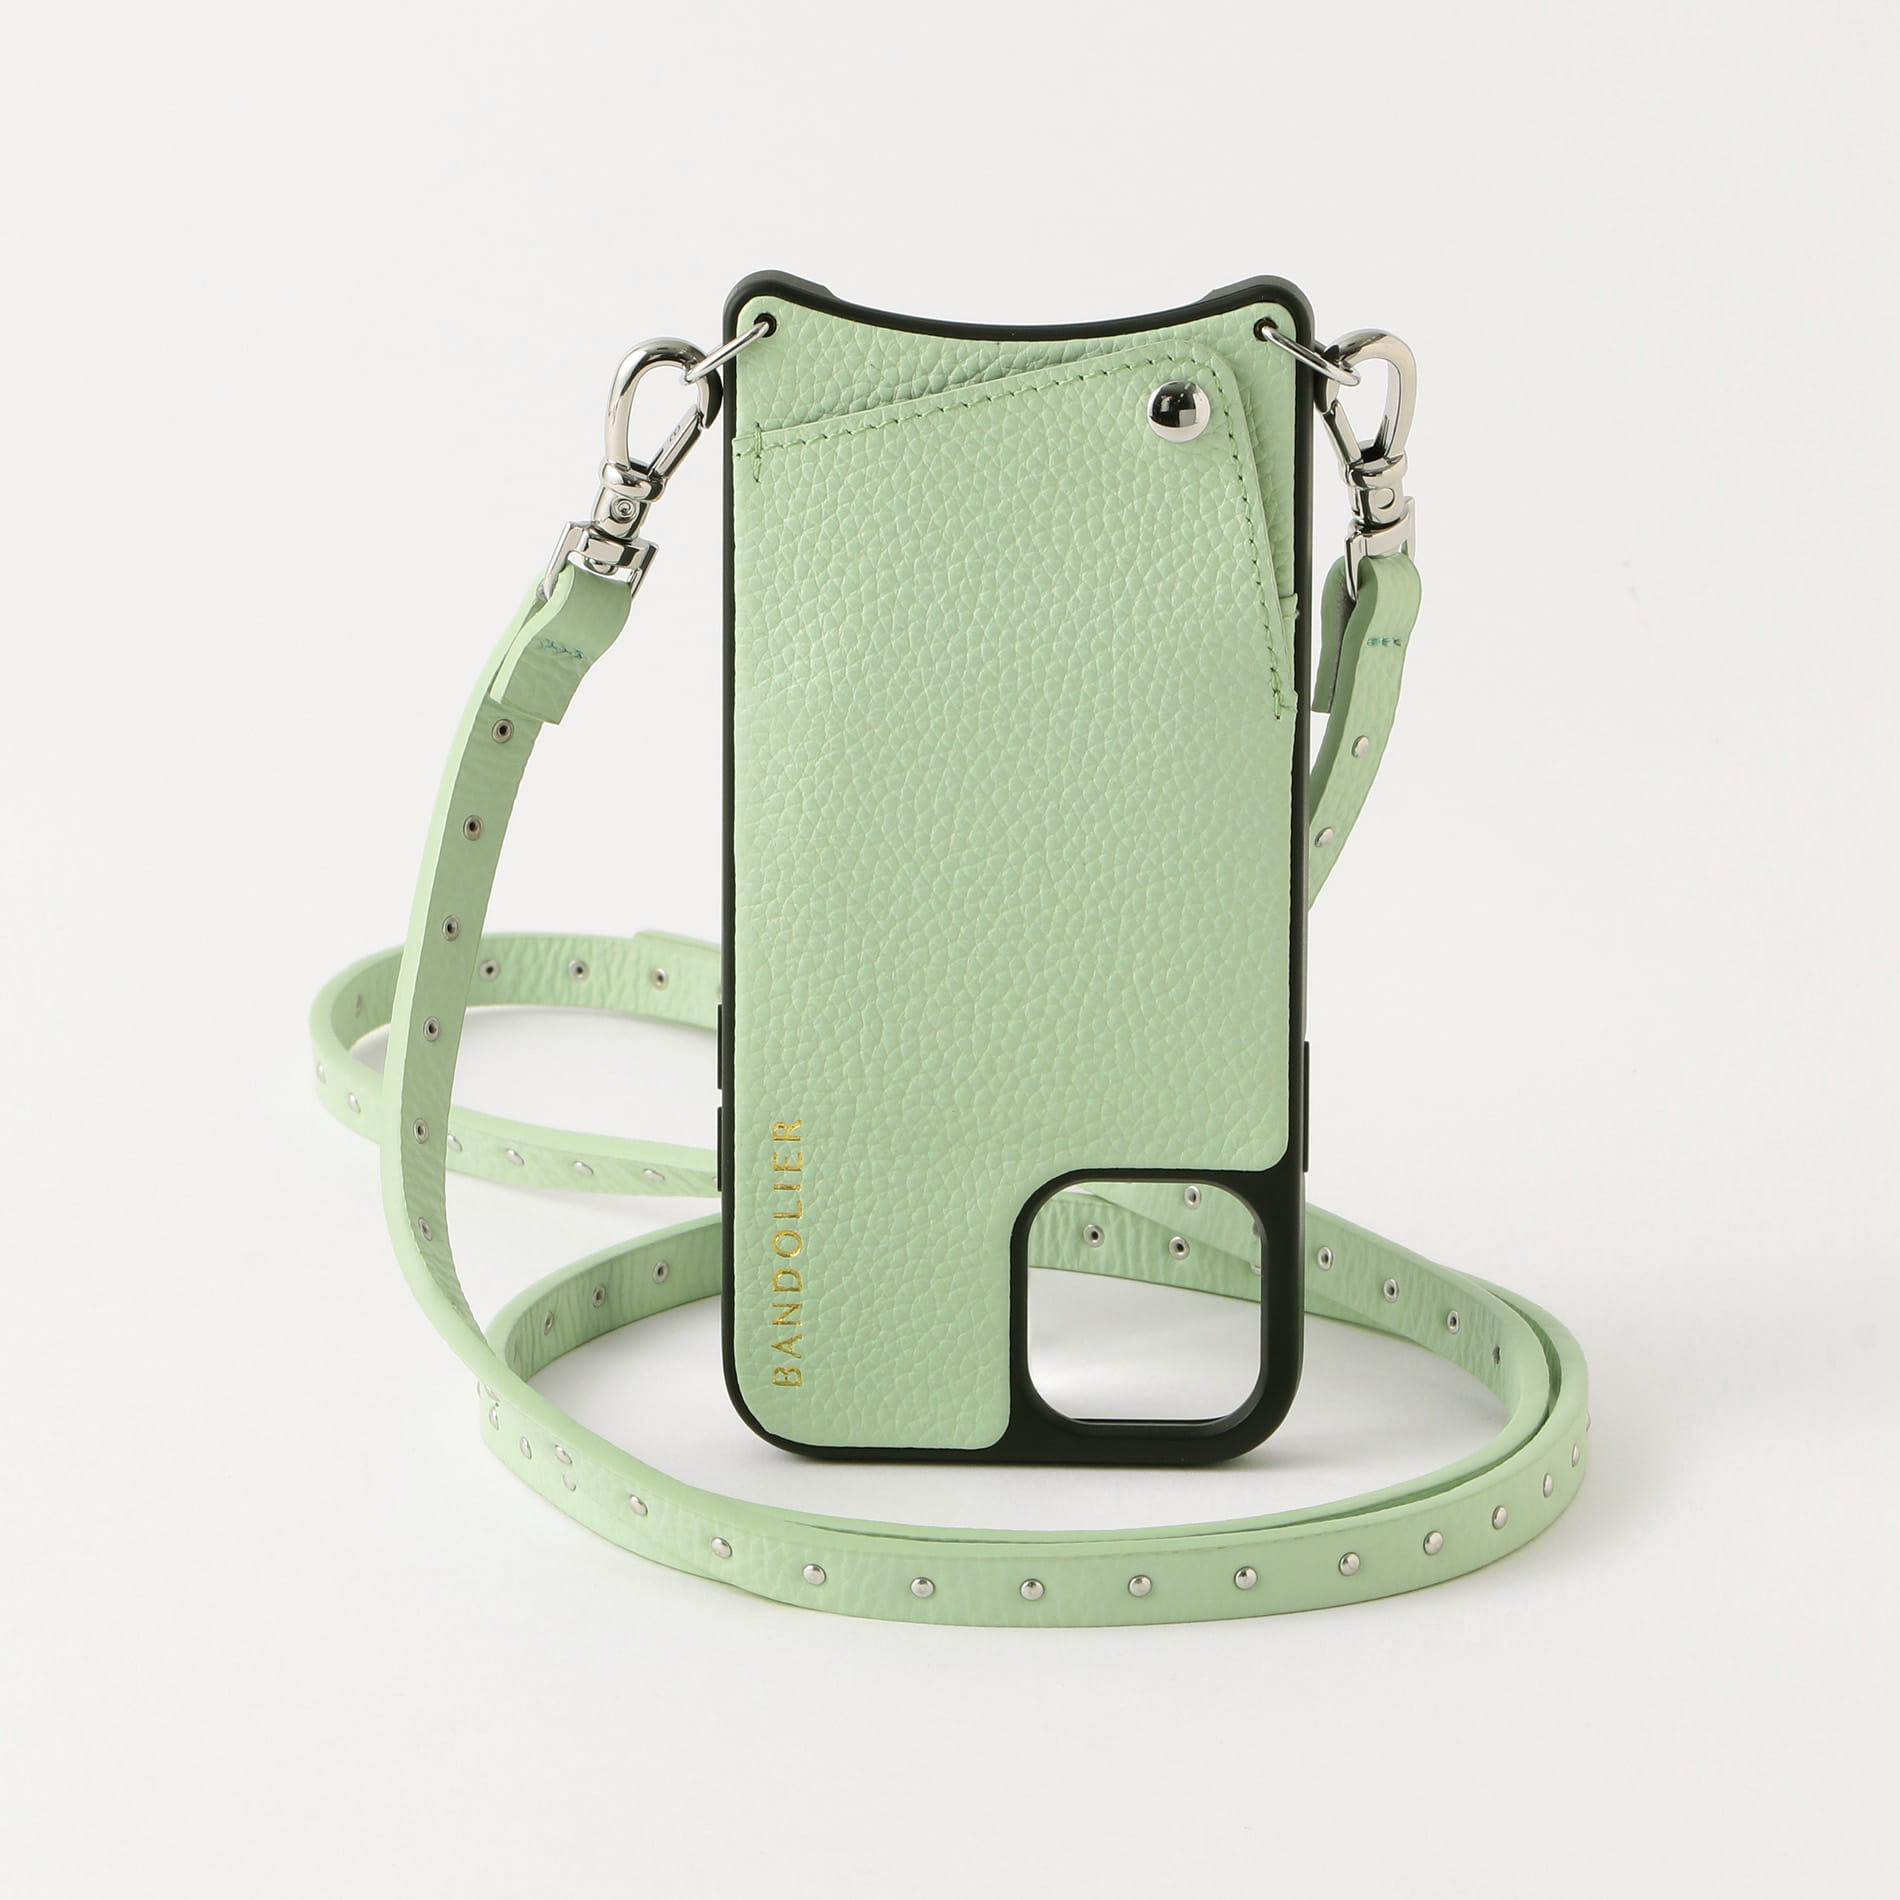 【BANDOLIER】NICOLE MIST GREEN iPhone 11 Pro bdl05-10nic-migrn-11p